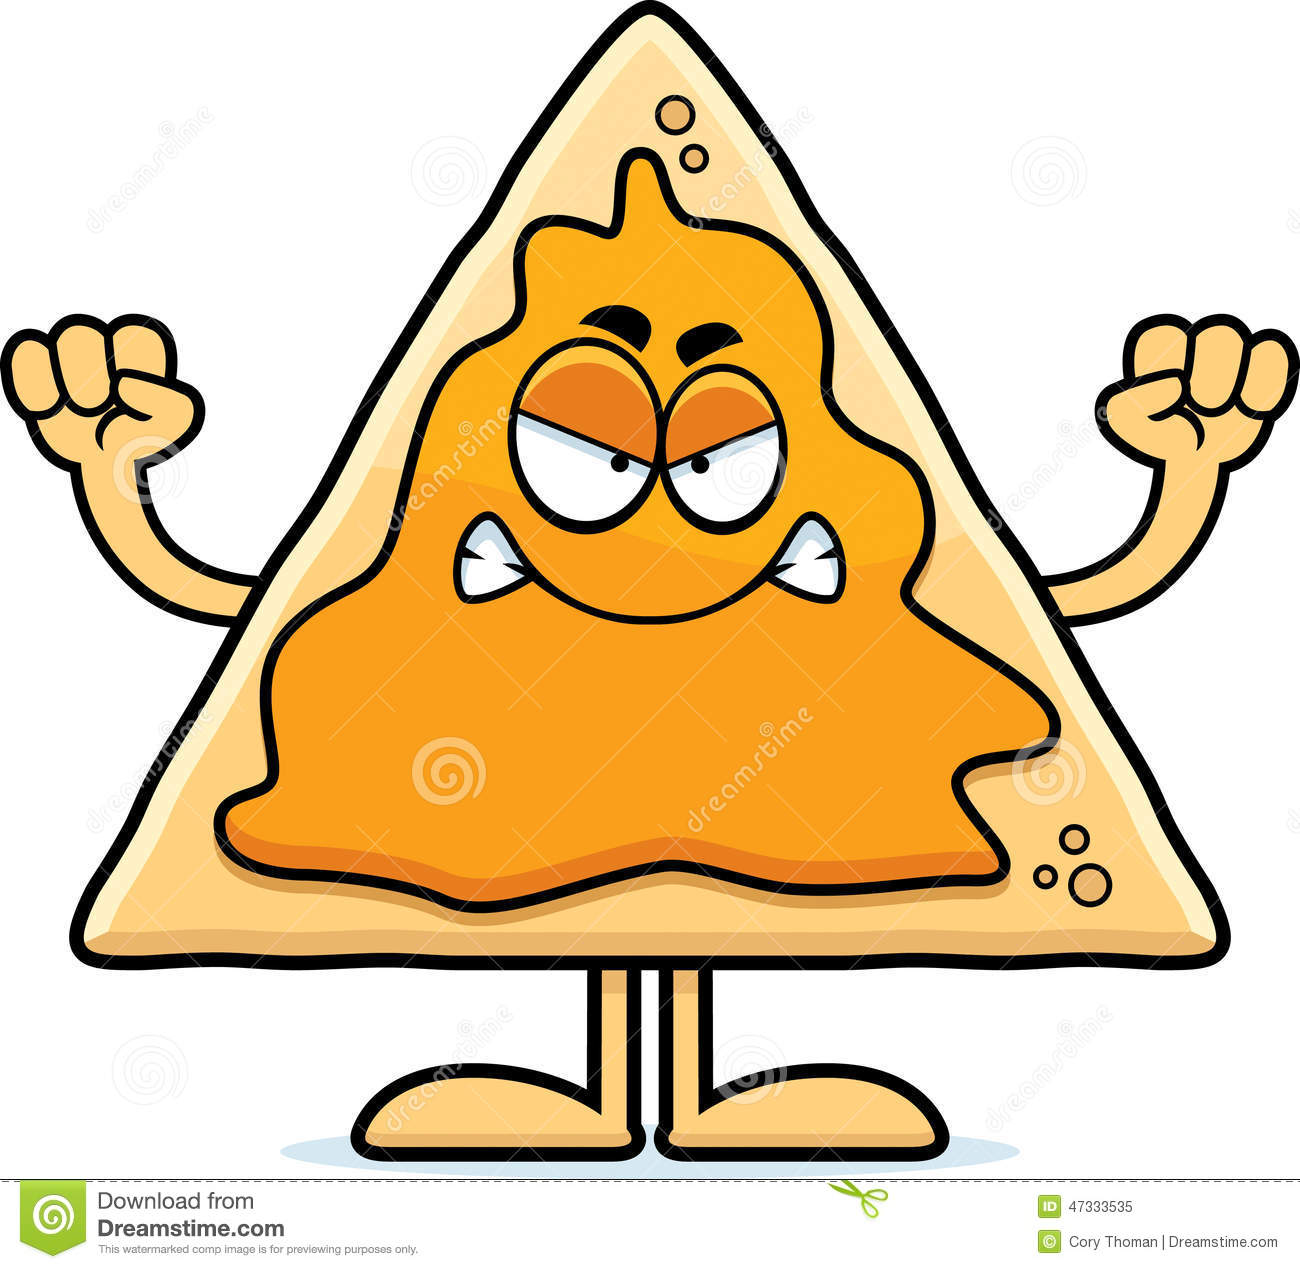 Cheetos Doritos Fritos And Lay S 54 Classic Mix Box 1164359 in addition Menu furthermore Tamale additionally Stock Illustration Angry Cartoon Nachos Illustration Nacho Chip Looking Image47333535 also Stock Illustration Slice Cheese Illustration White Background Image53804680. on cartoon nachos and cheese